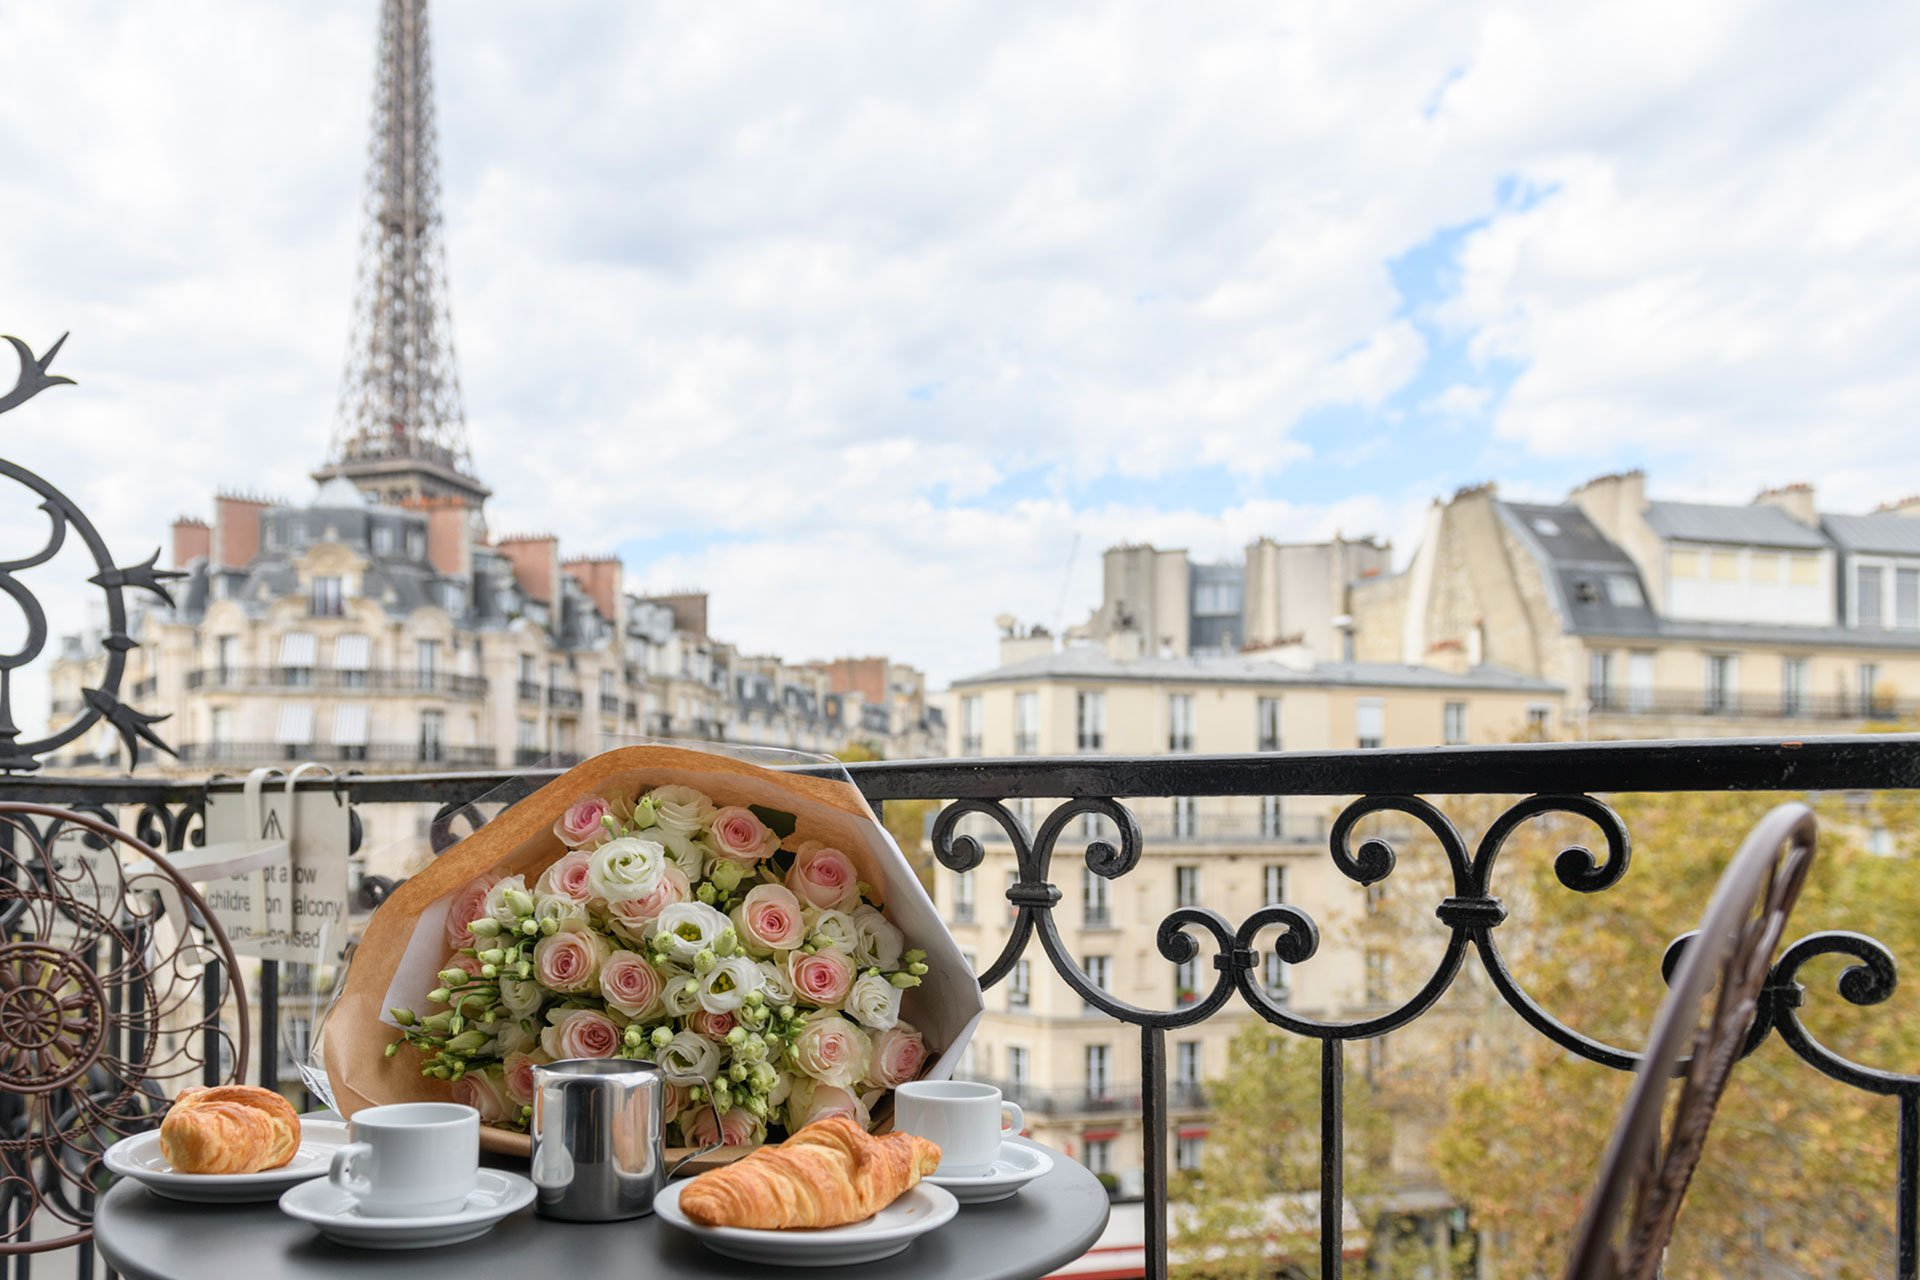 Eiffel Tower views from the balcony of the Bordeaux vacation rental by Paris Perfect